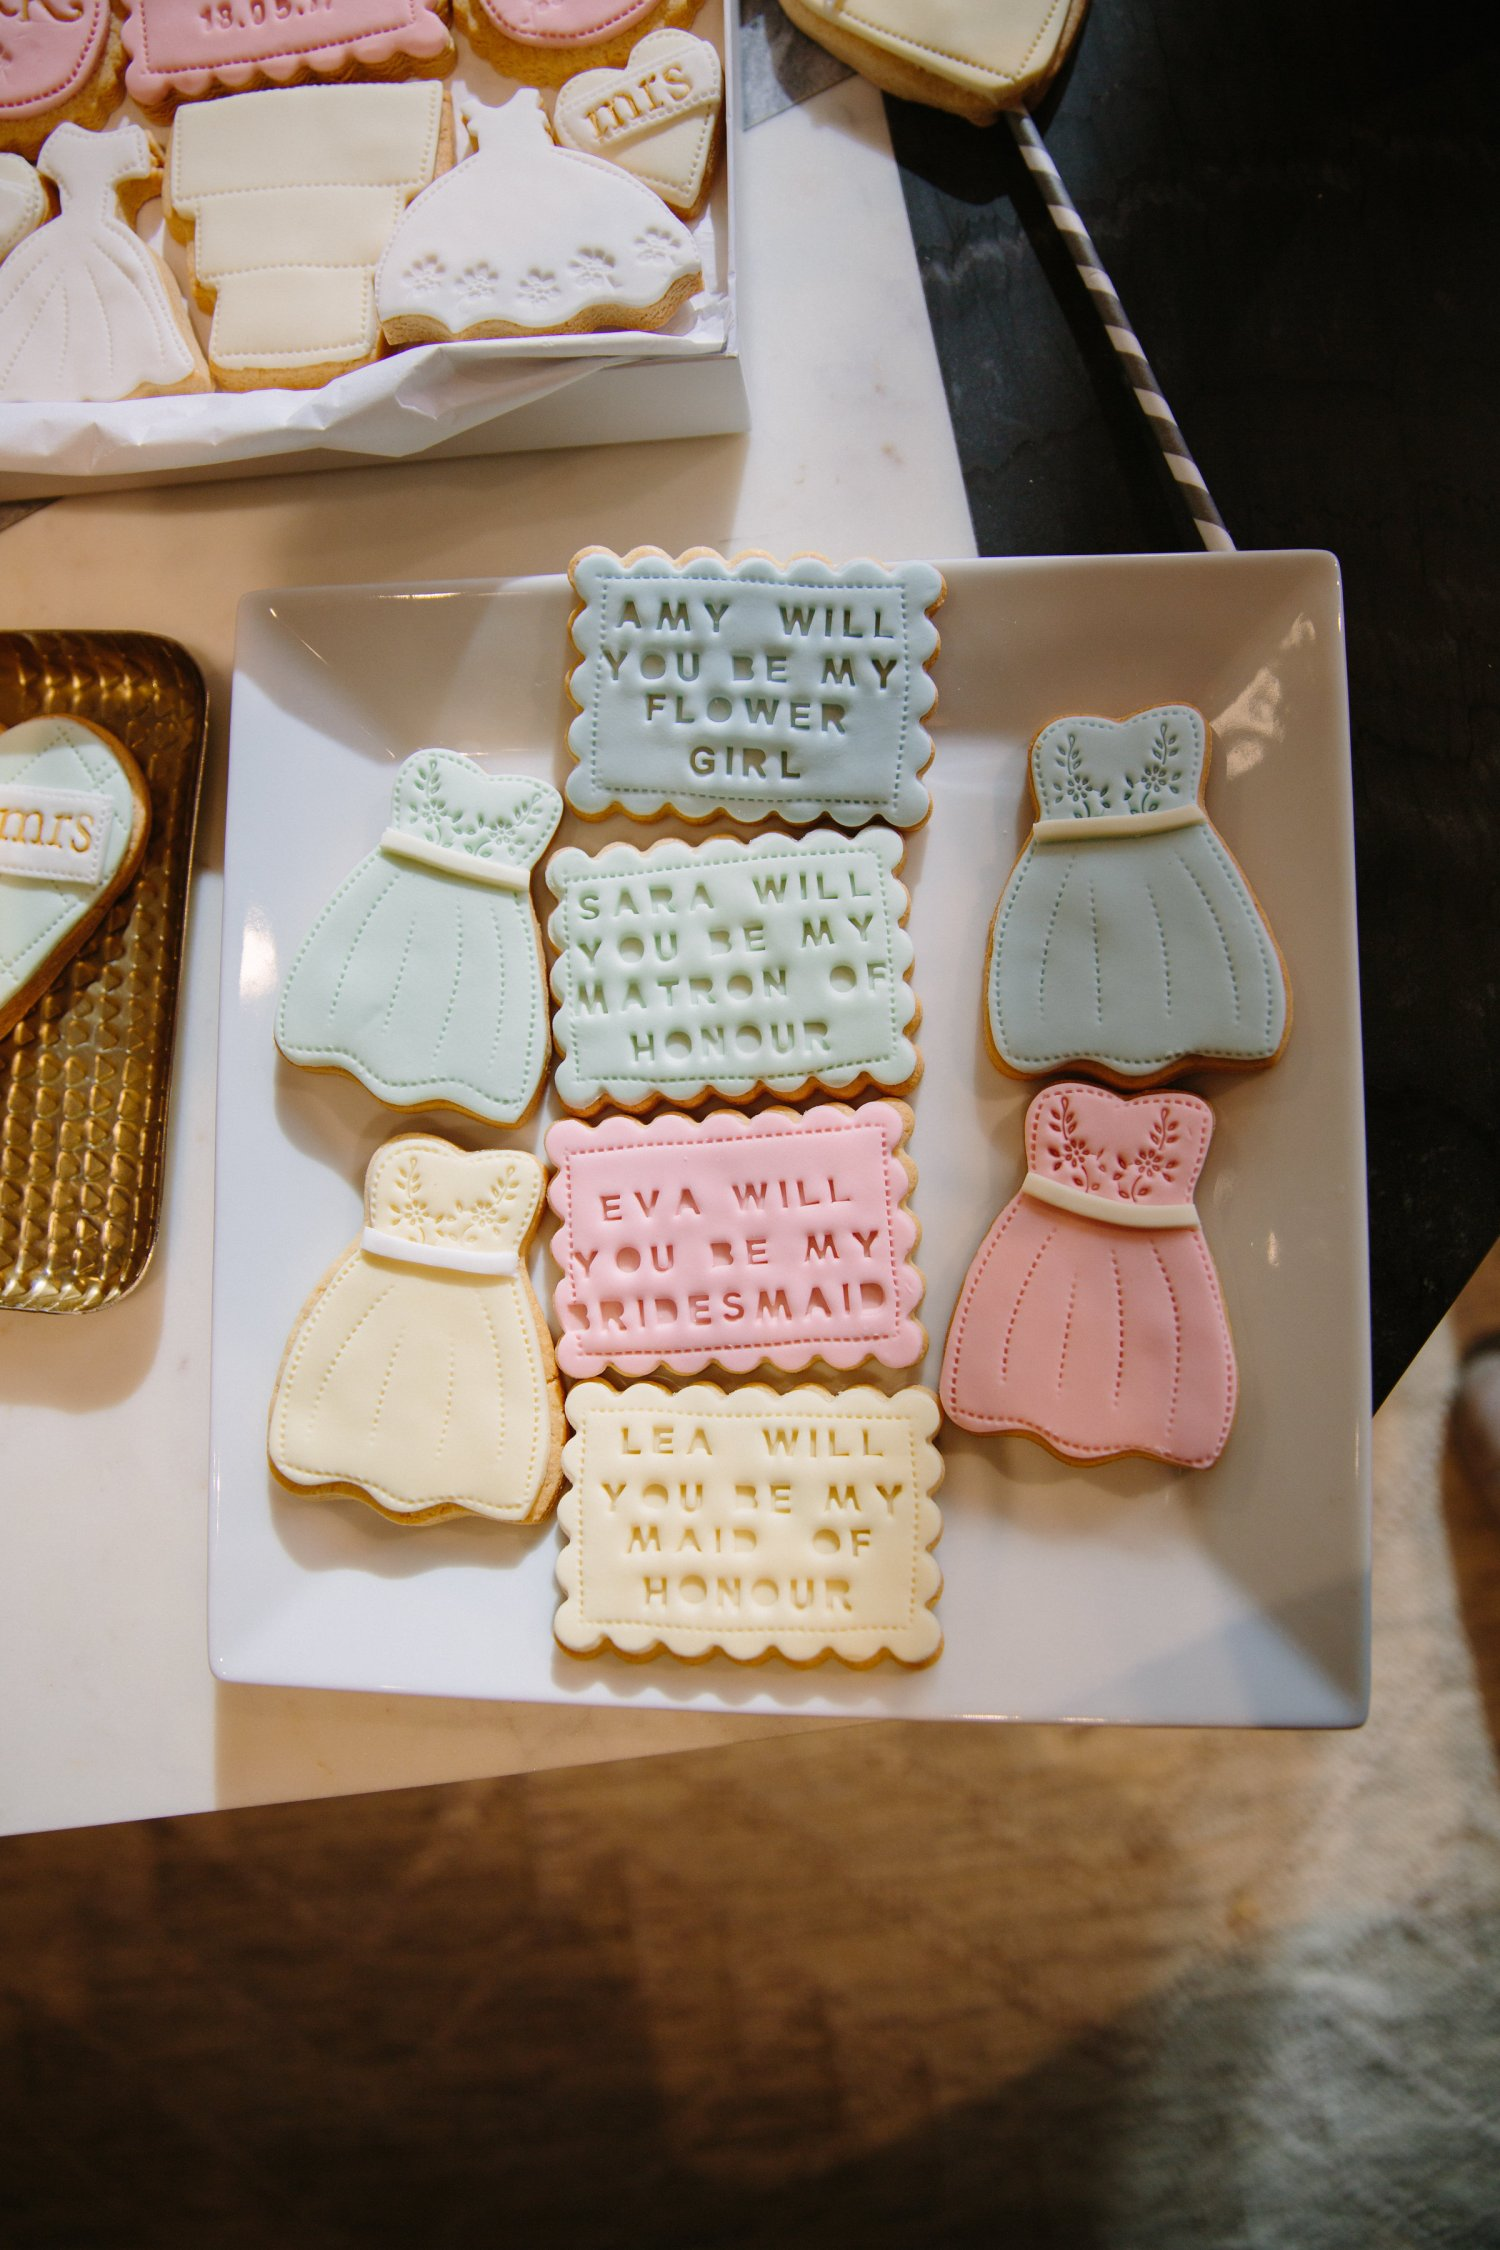 Etsy-WestElm-nila_holden_wedding_favour_biscuits